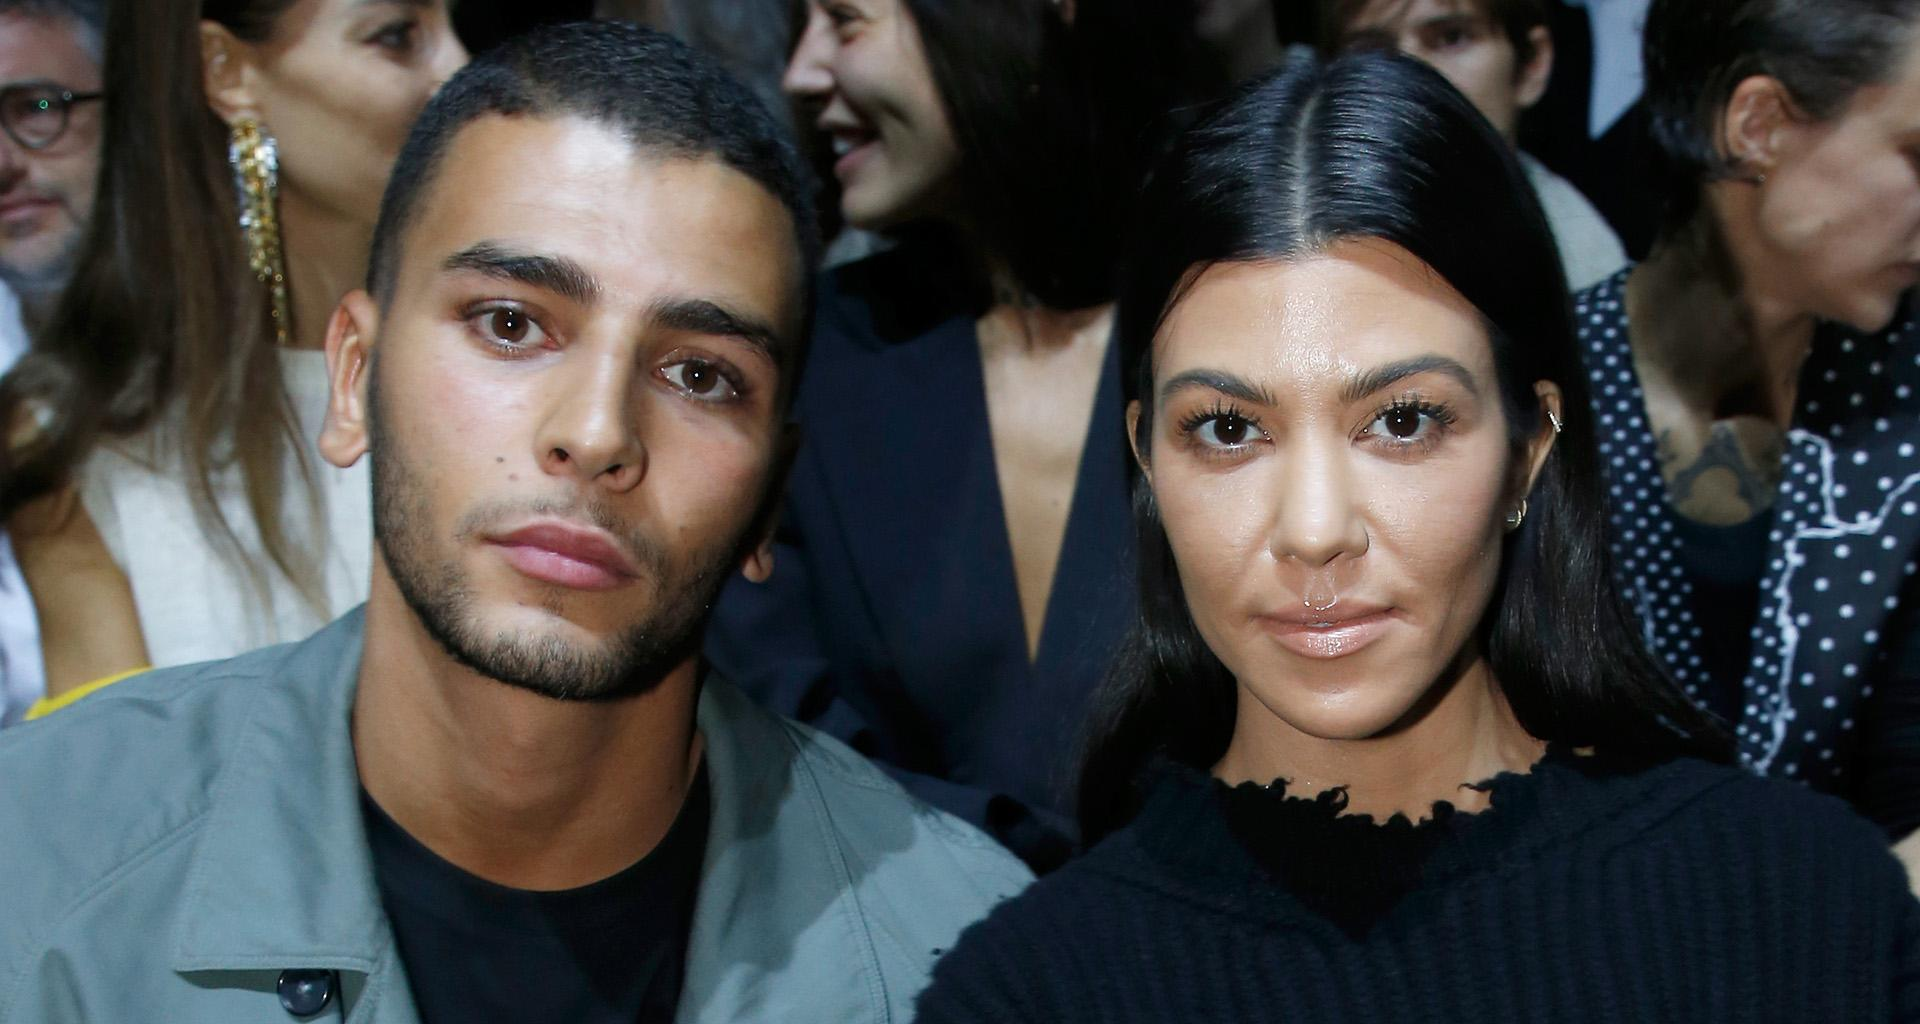 KUWK: Kourtney Kardashian And Younes Bendjima - Her Thoughts On Becoming 'Official' With Him Again!